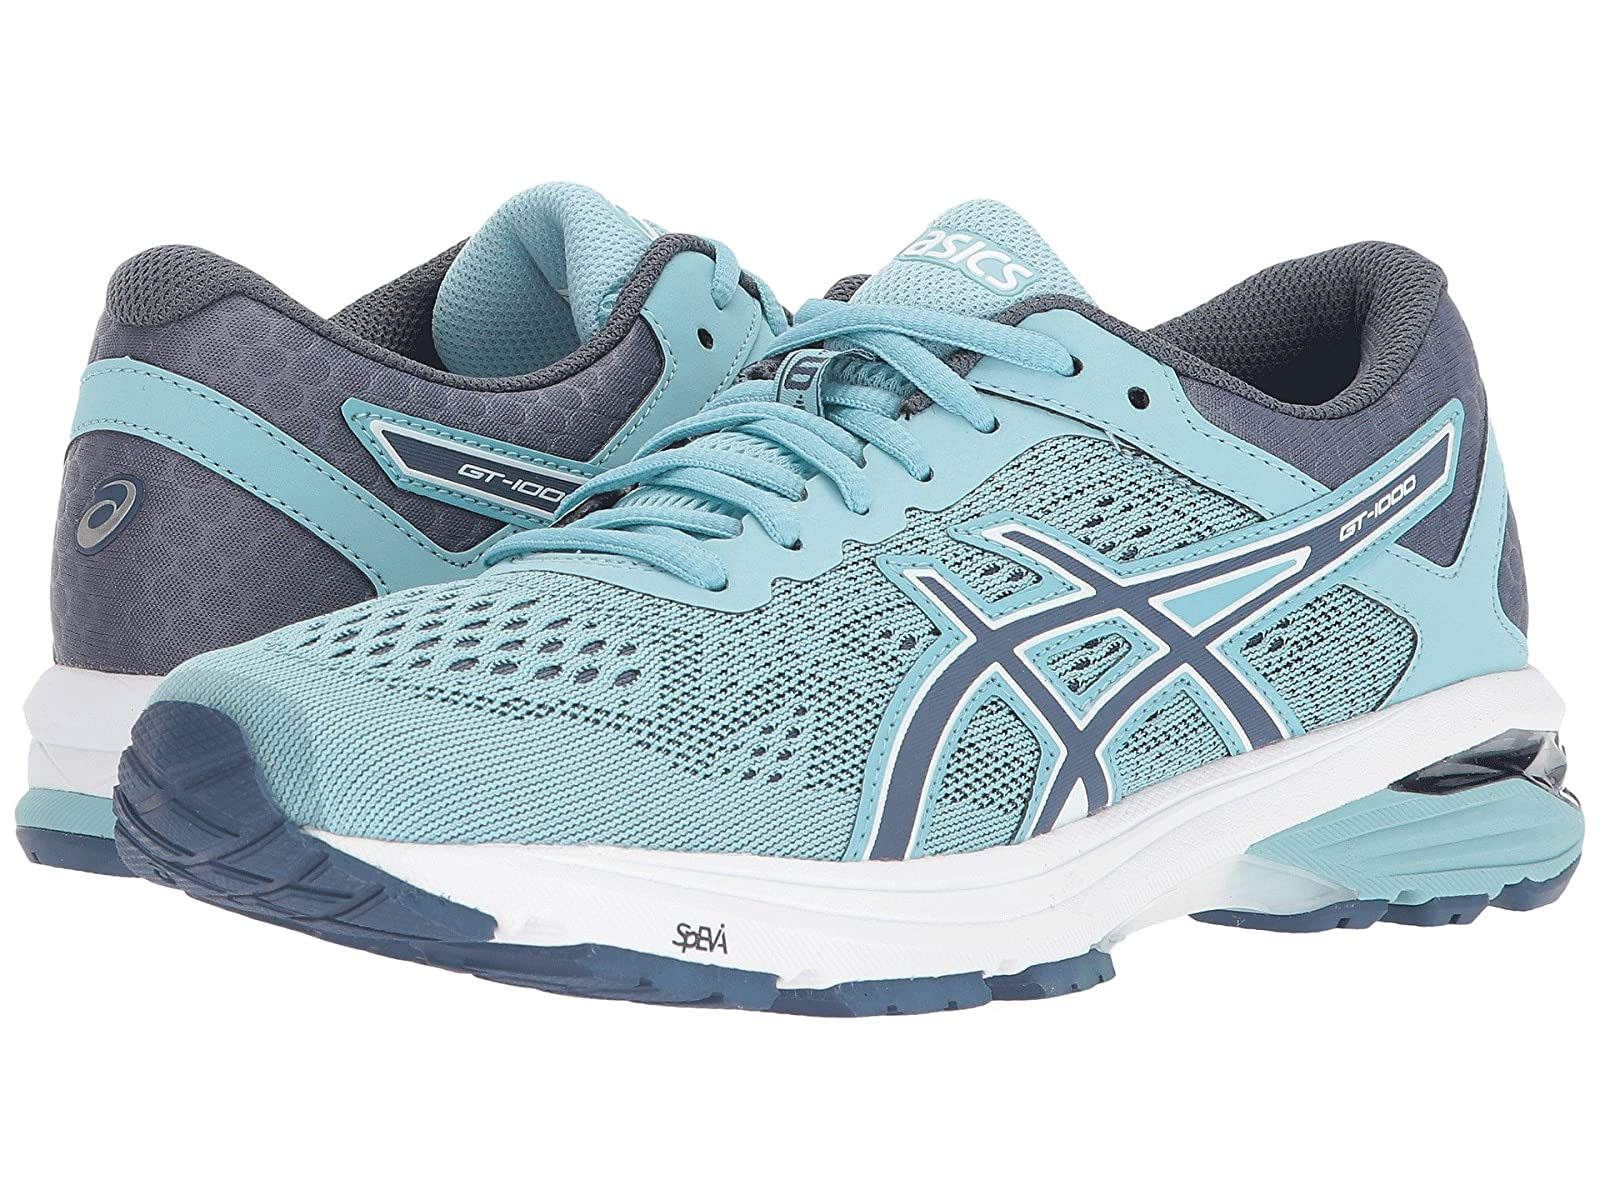 ASICS GT-1000 6Cheap and distinctive eye-catching shoes